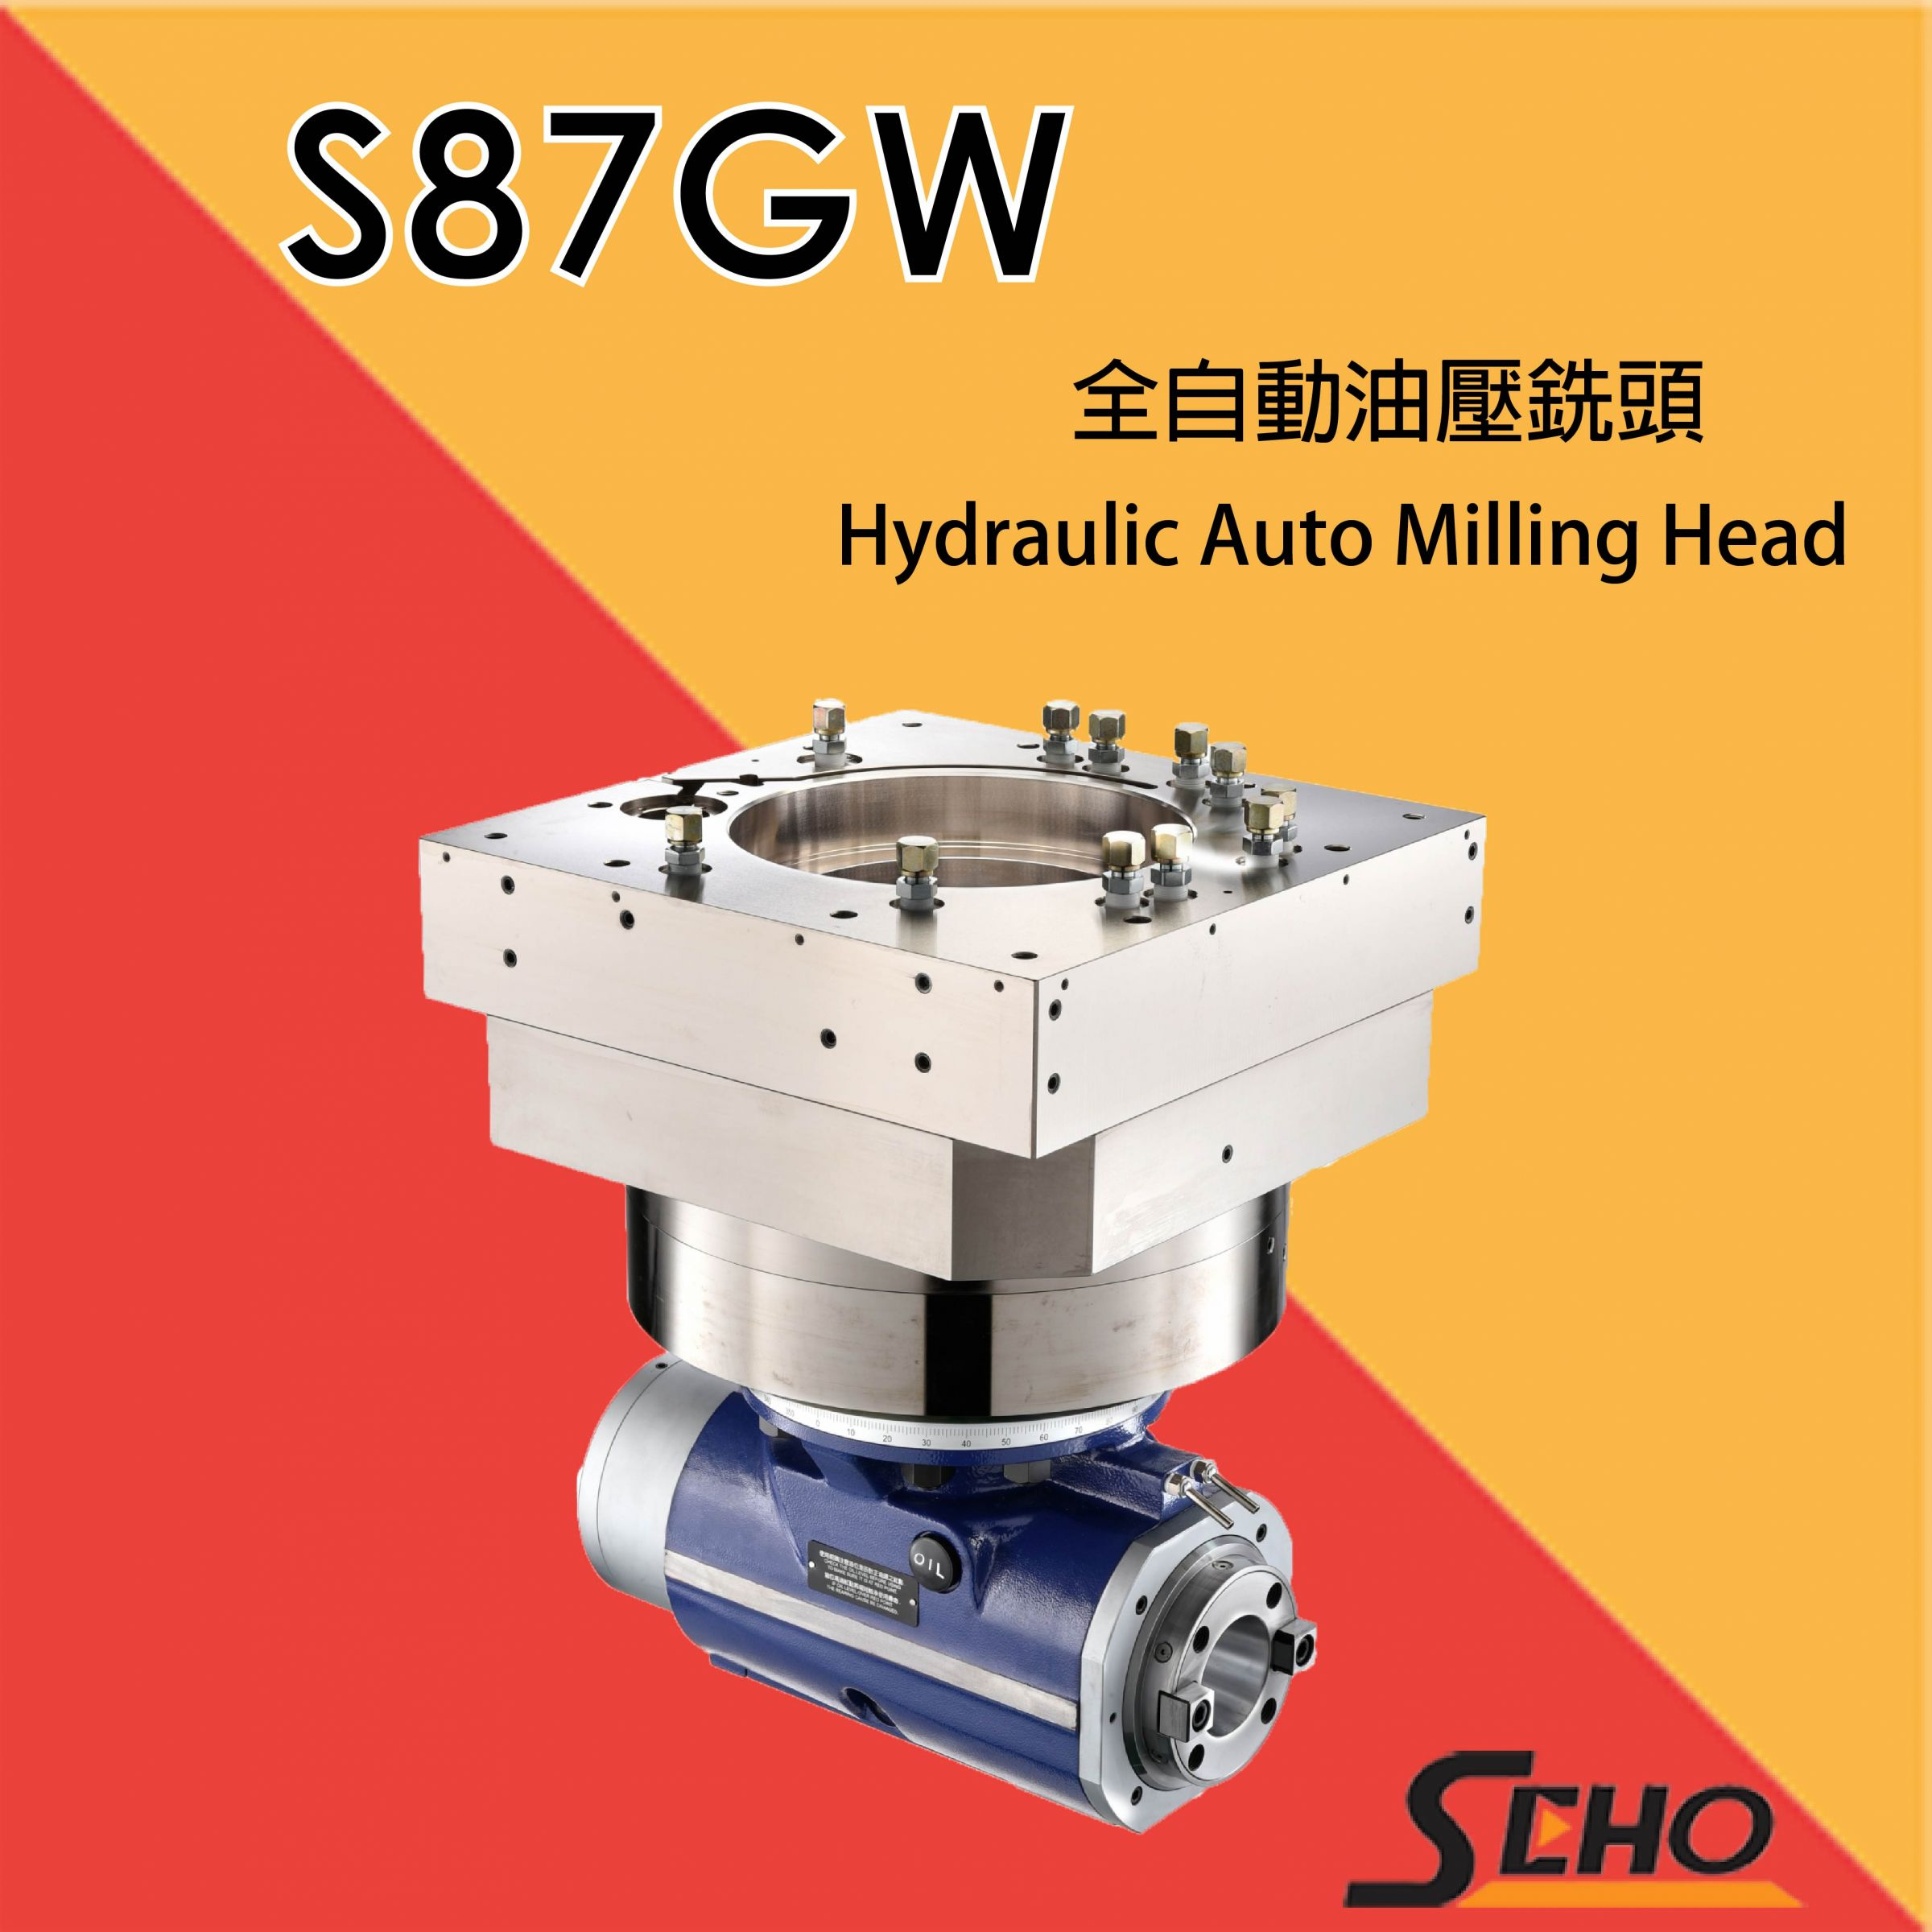 90 Degree Milling Head